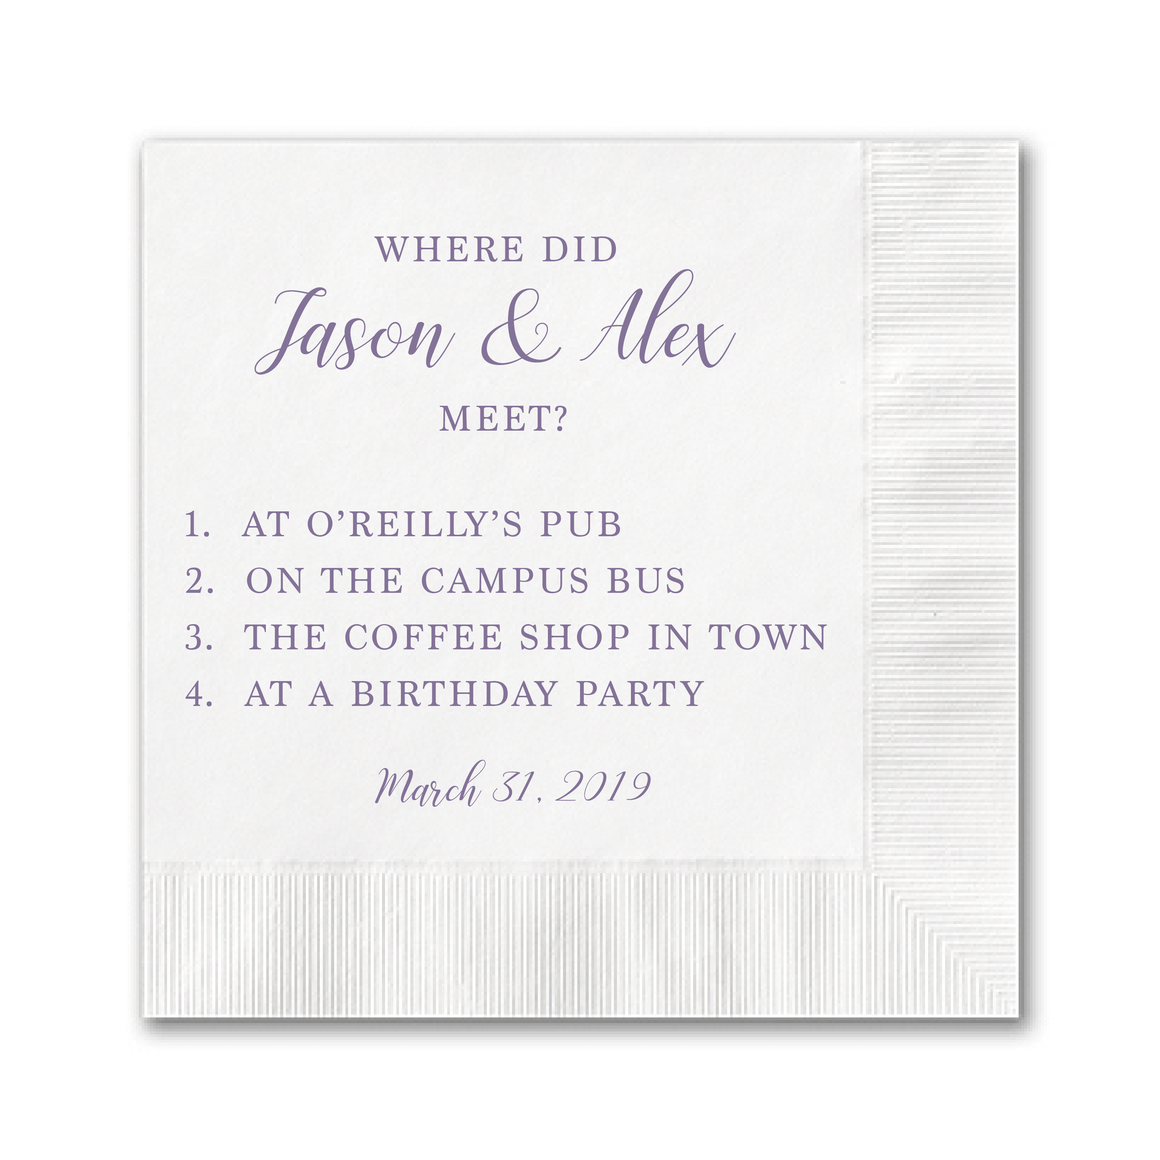 Personalized Wedding Napkin - Wedding Trivia Napkins